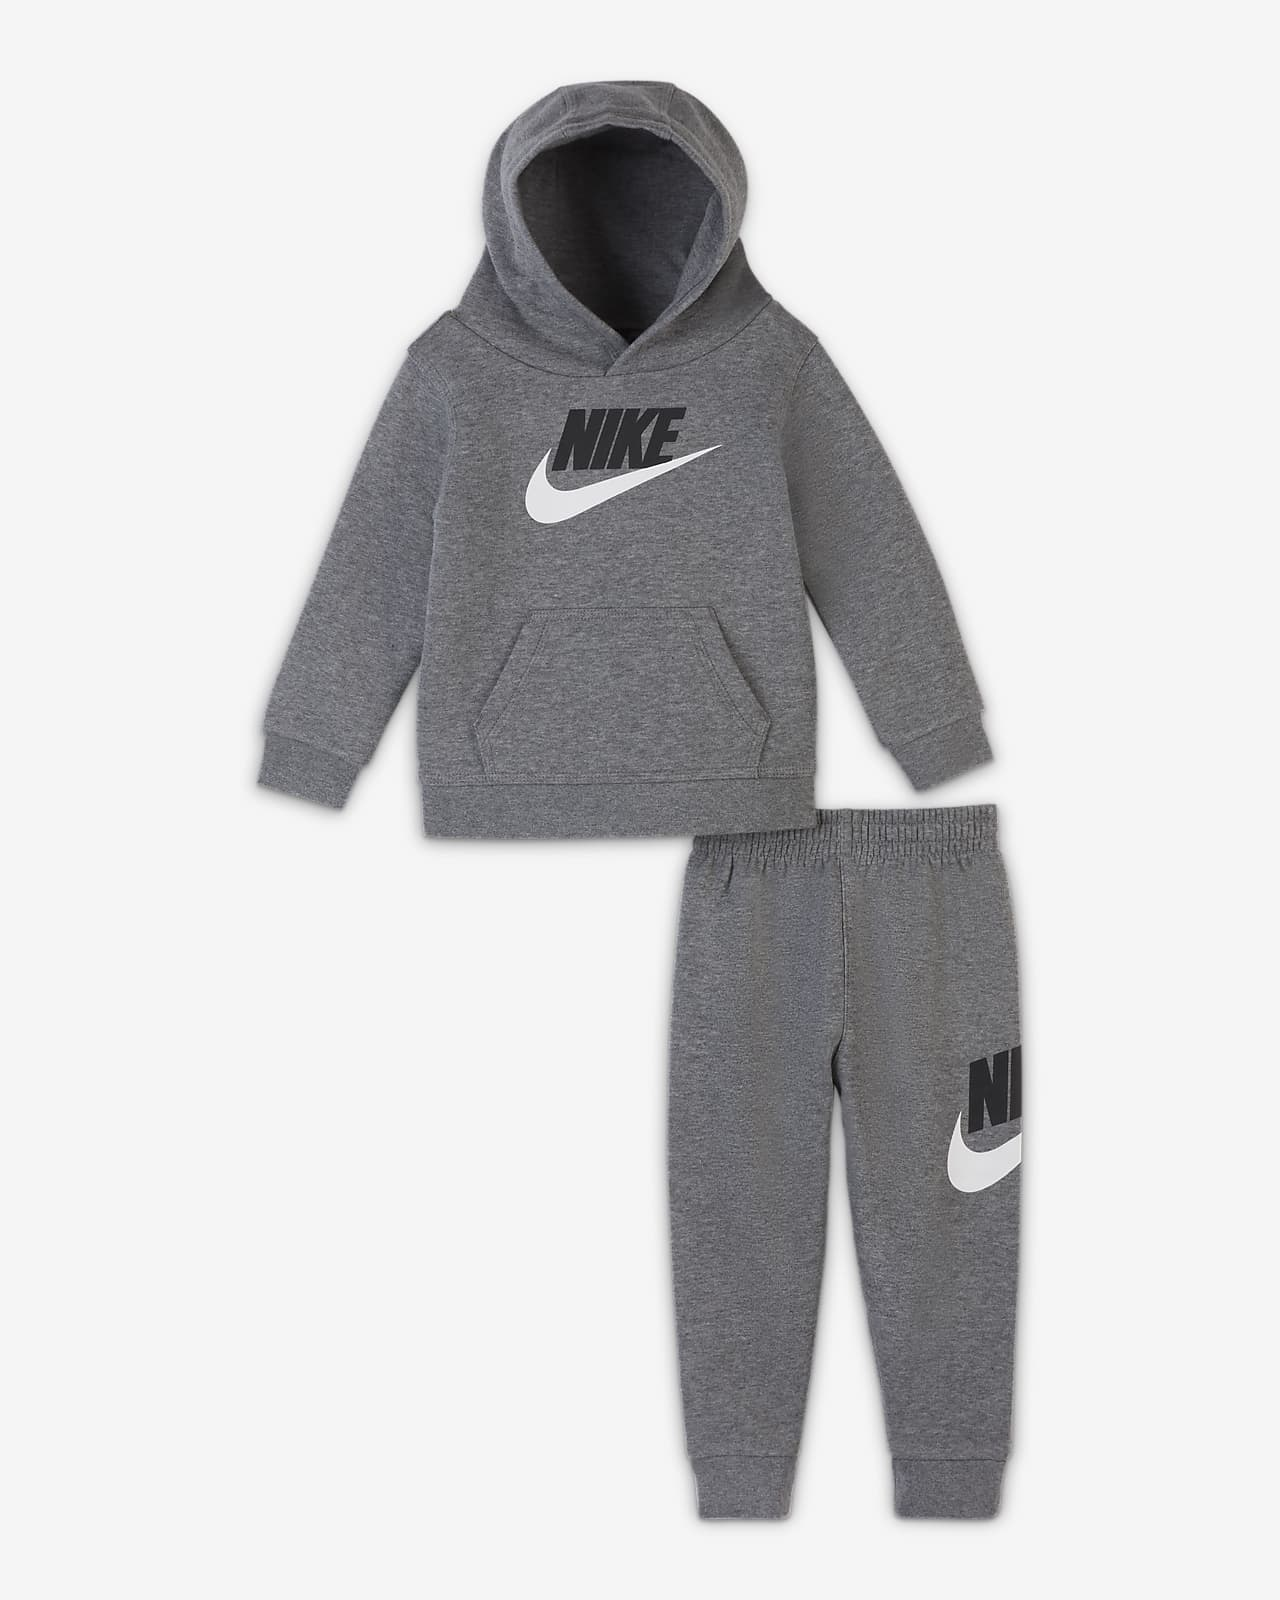 Nike Baby (12-24M) Hoodie and Joggers Set